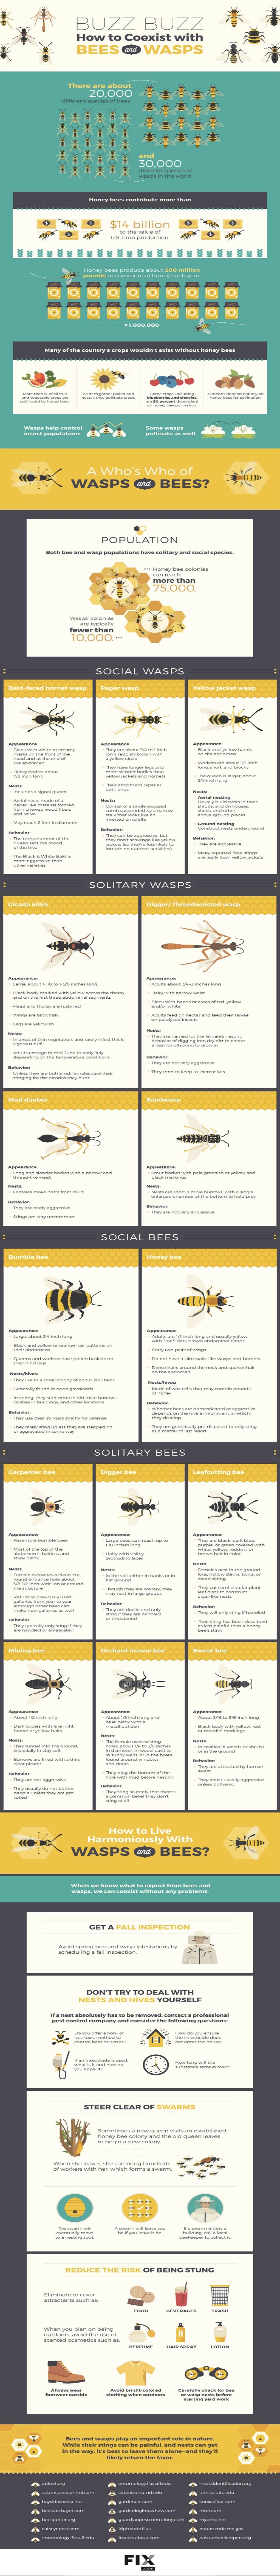 bees, save the bees, bee conservation, wasps,